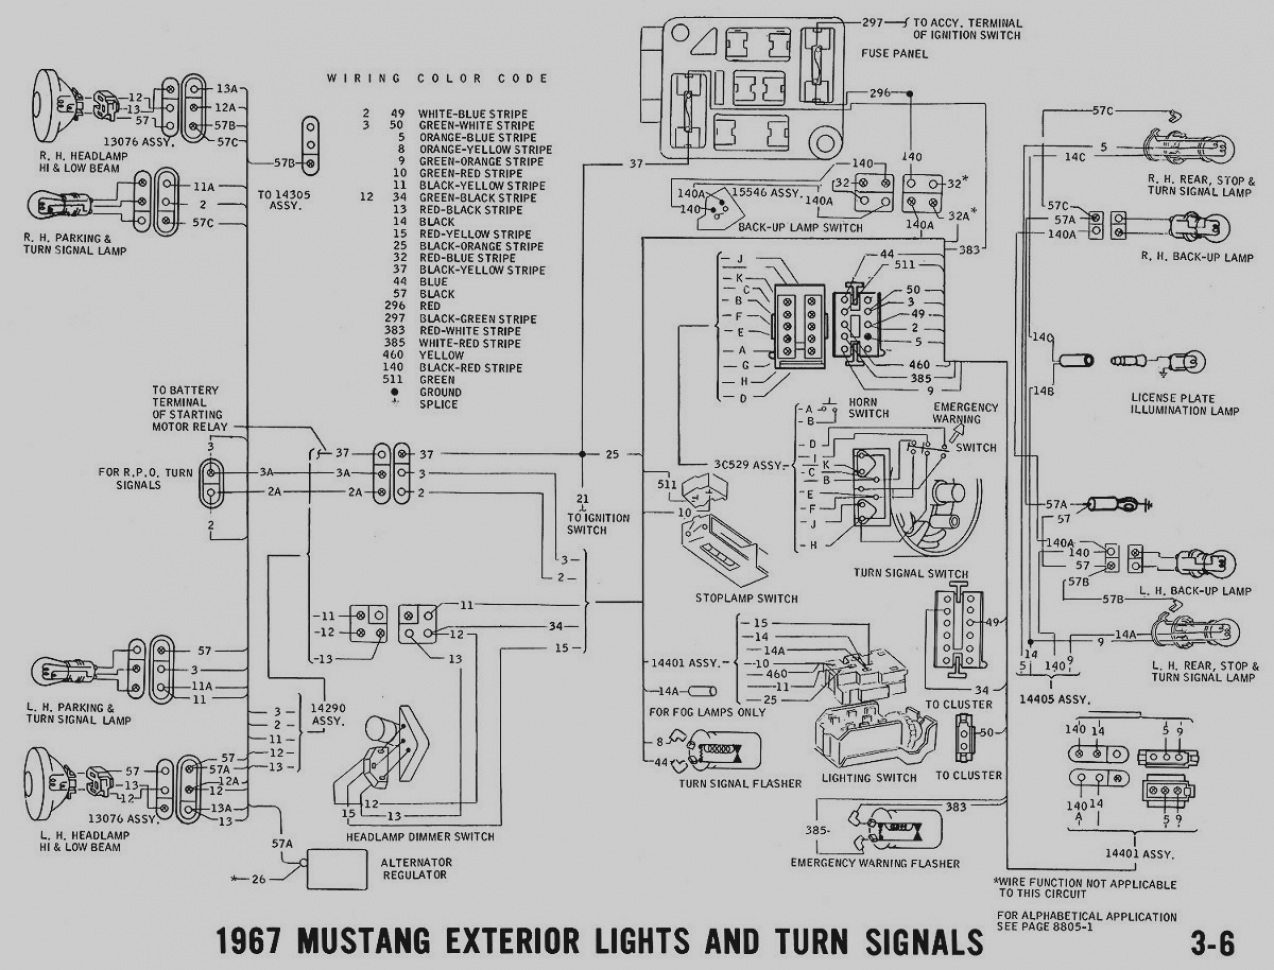 1967 cougar wiring diagram private sharing about wiring diagram u2022 rh caraccessoriesandsoftware co uk 1967 cougar alternator wiring diagram